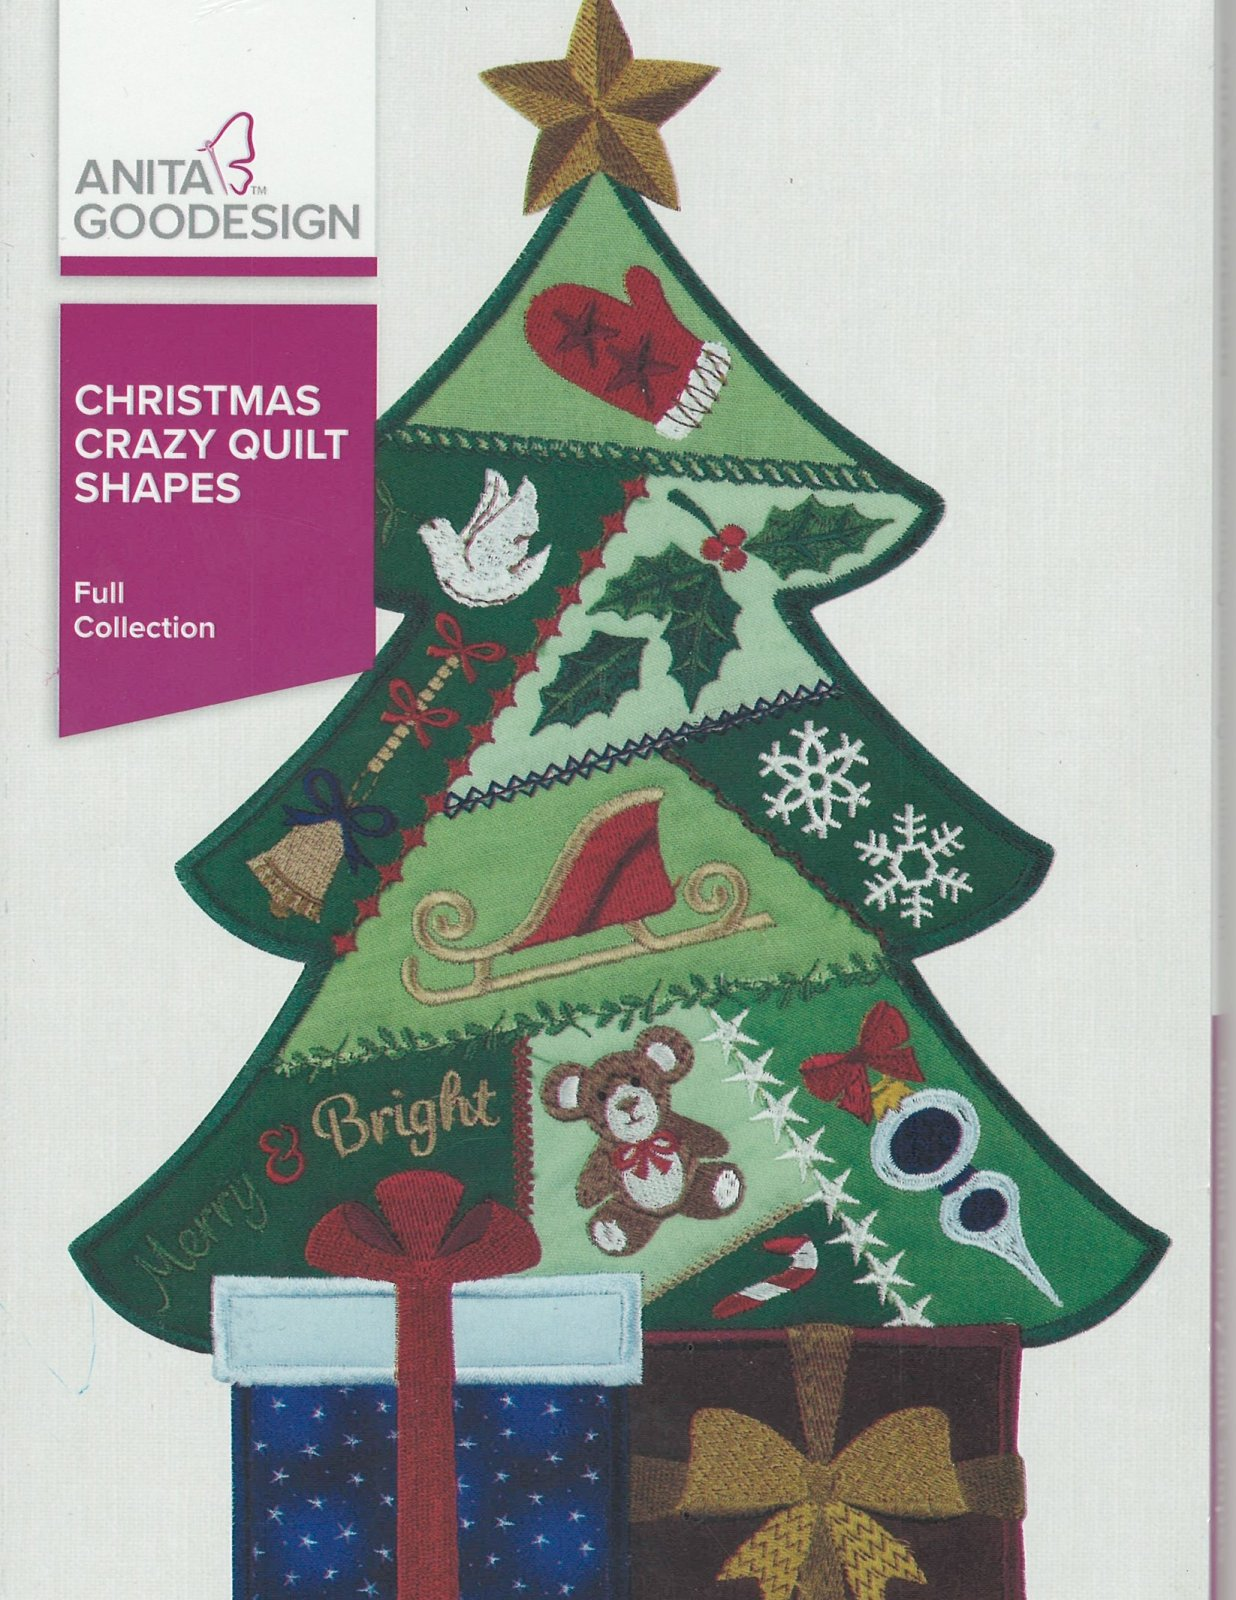 Anita Goodesign Machine Embroidery designs Christmas Crazy Quilt Shapes Full Collection CD